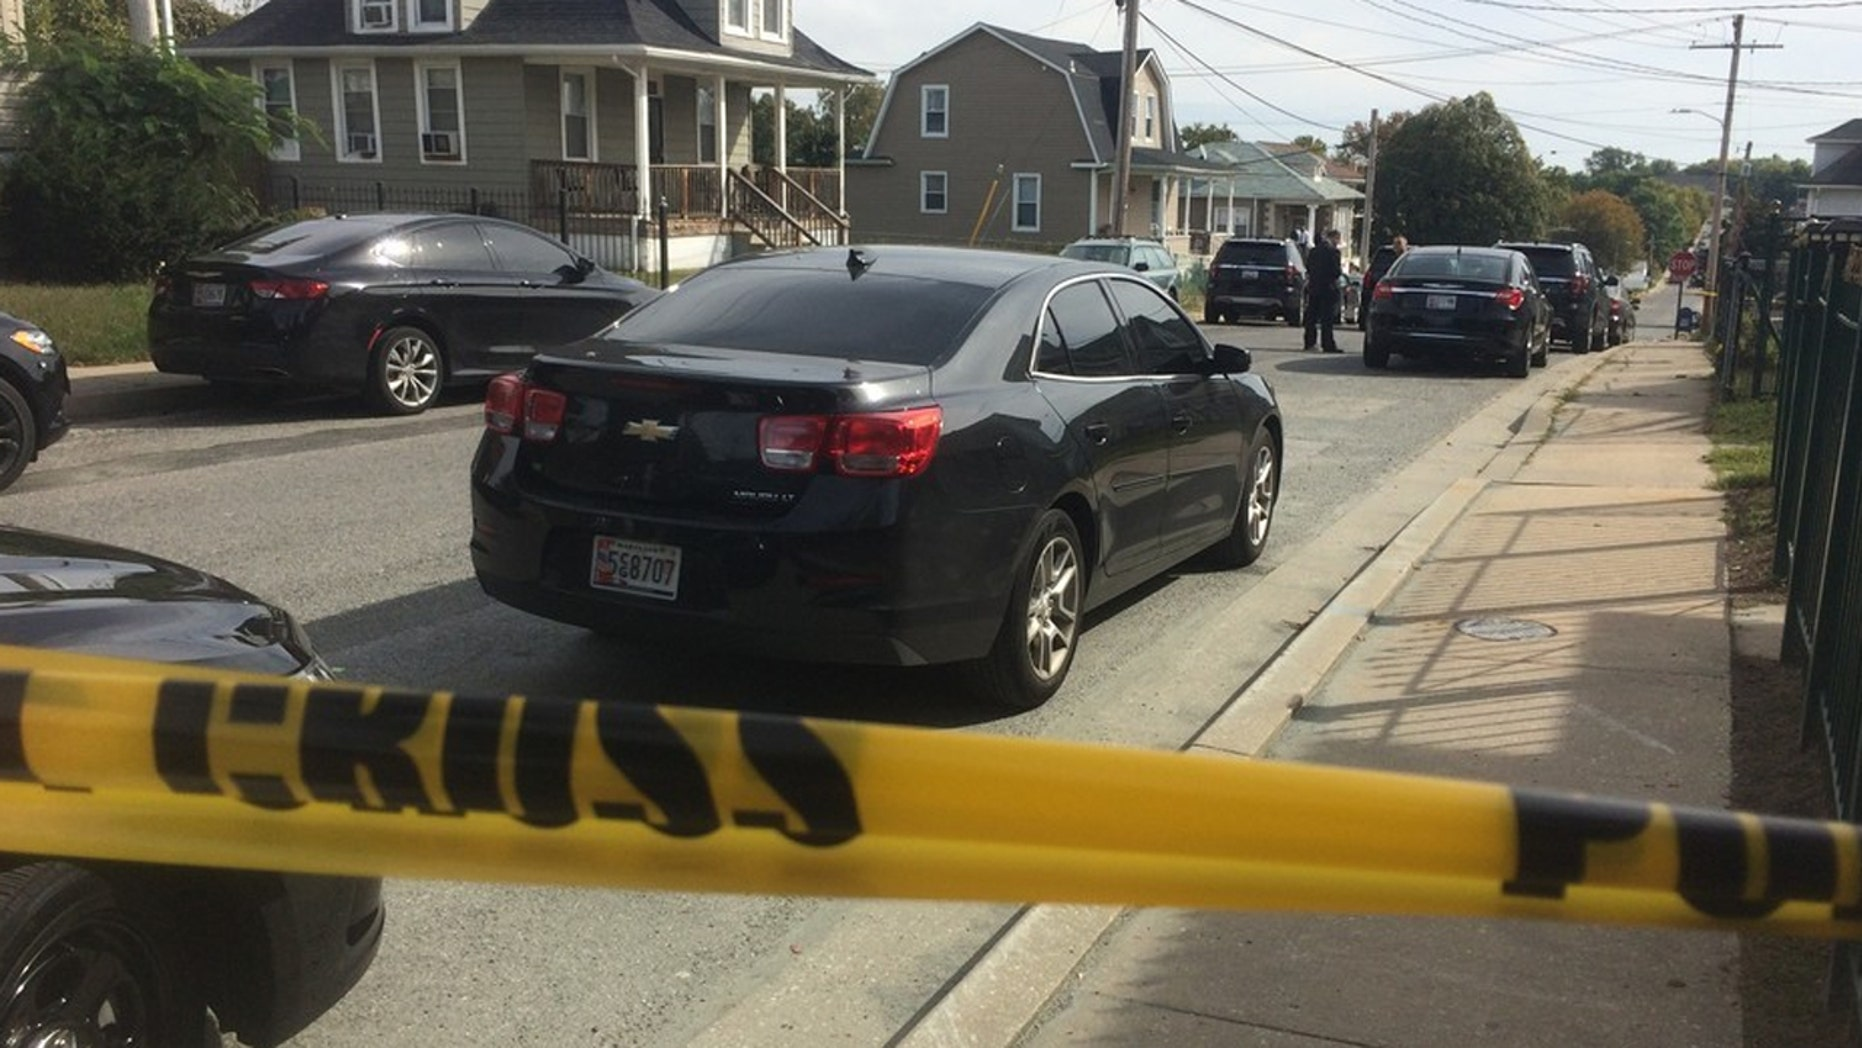 An off-duty Baltimore police officer shot an intruder in his home, officials said.